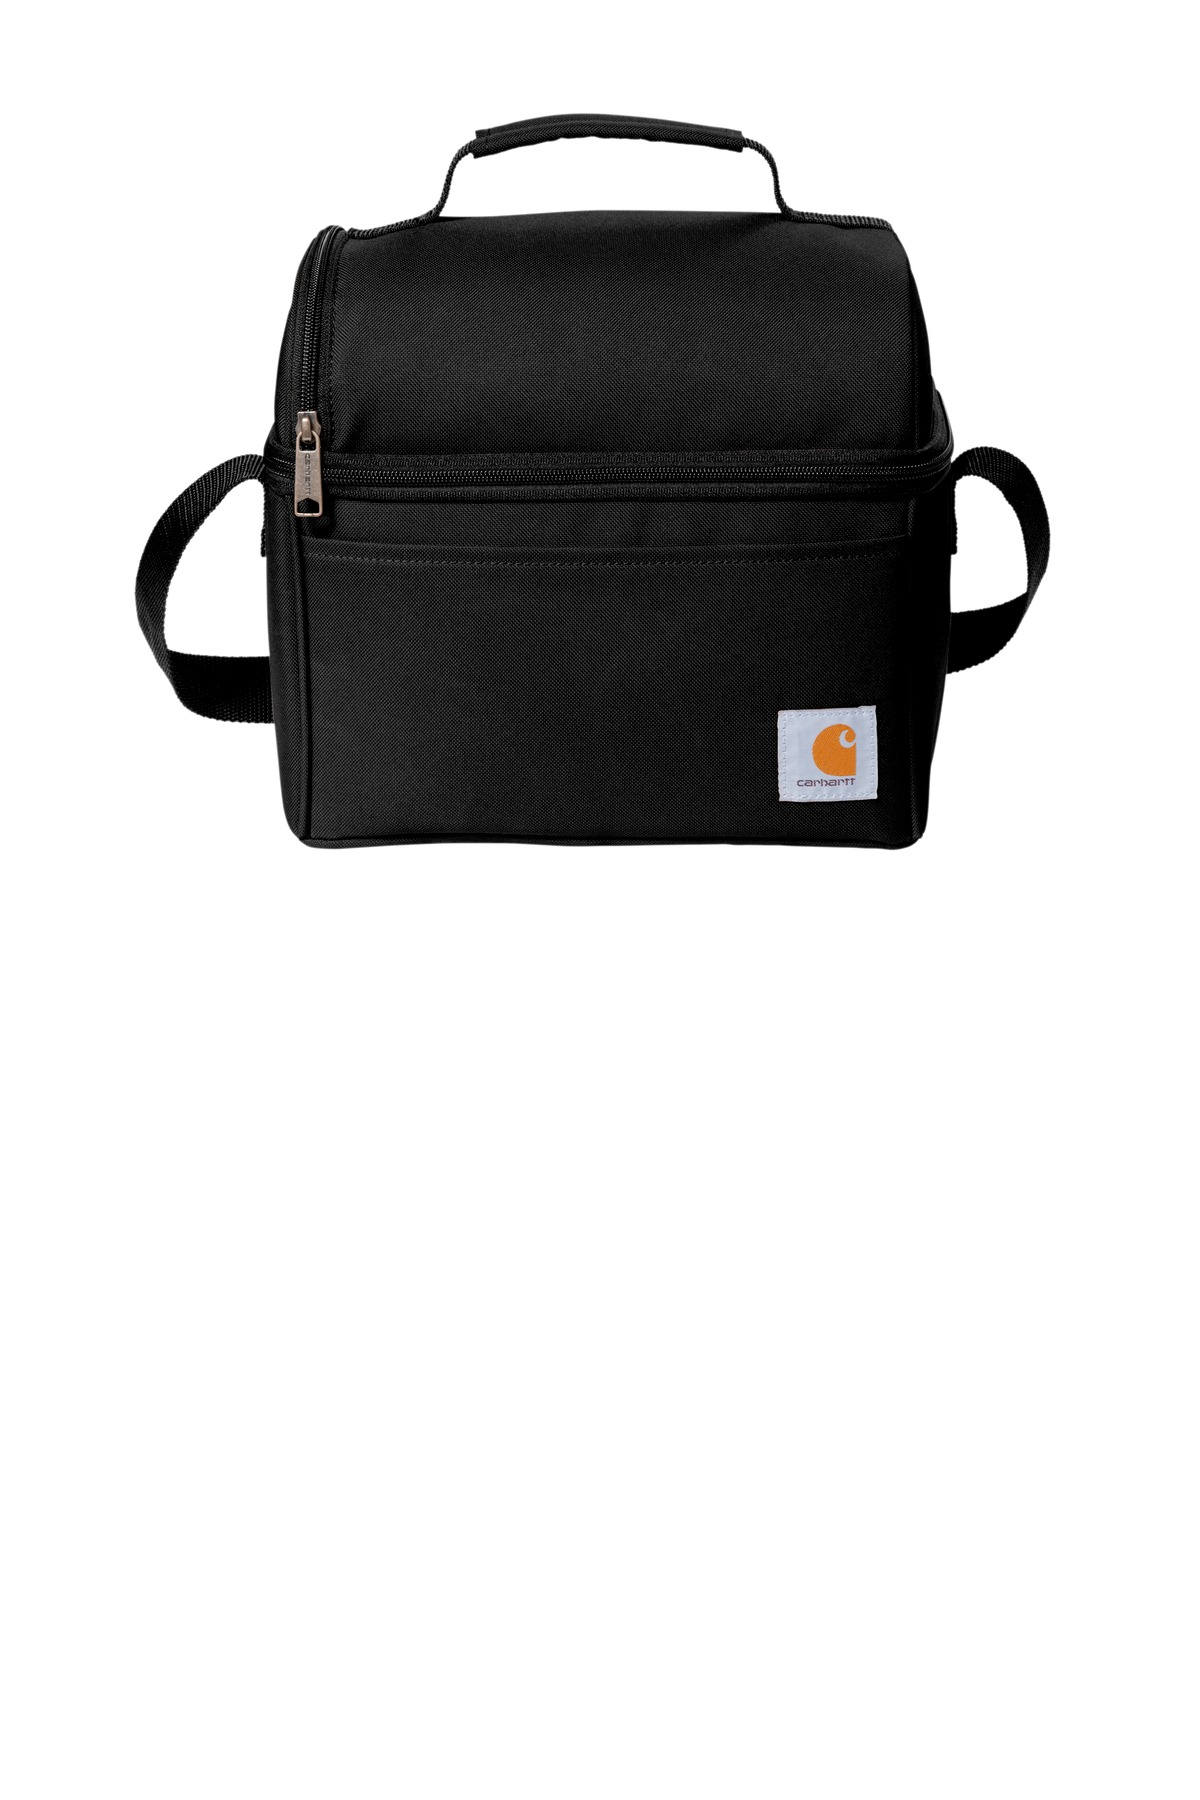 Carhartt ®   Lunch 6-Can Cooler. CT89251601 - Black